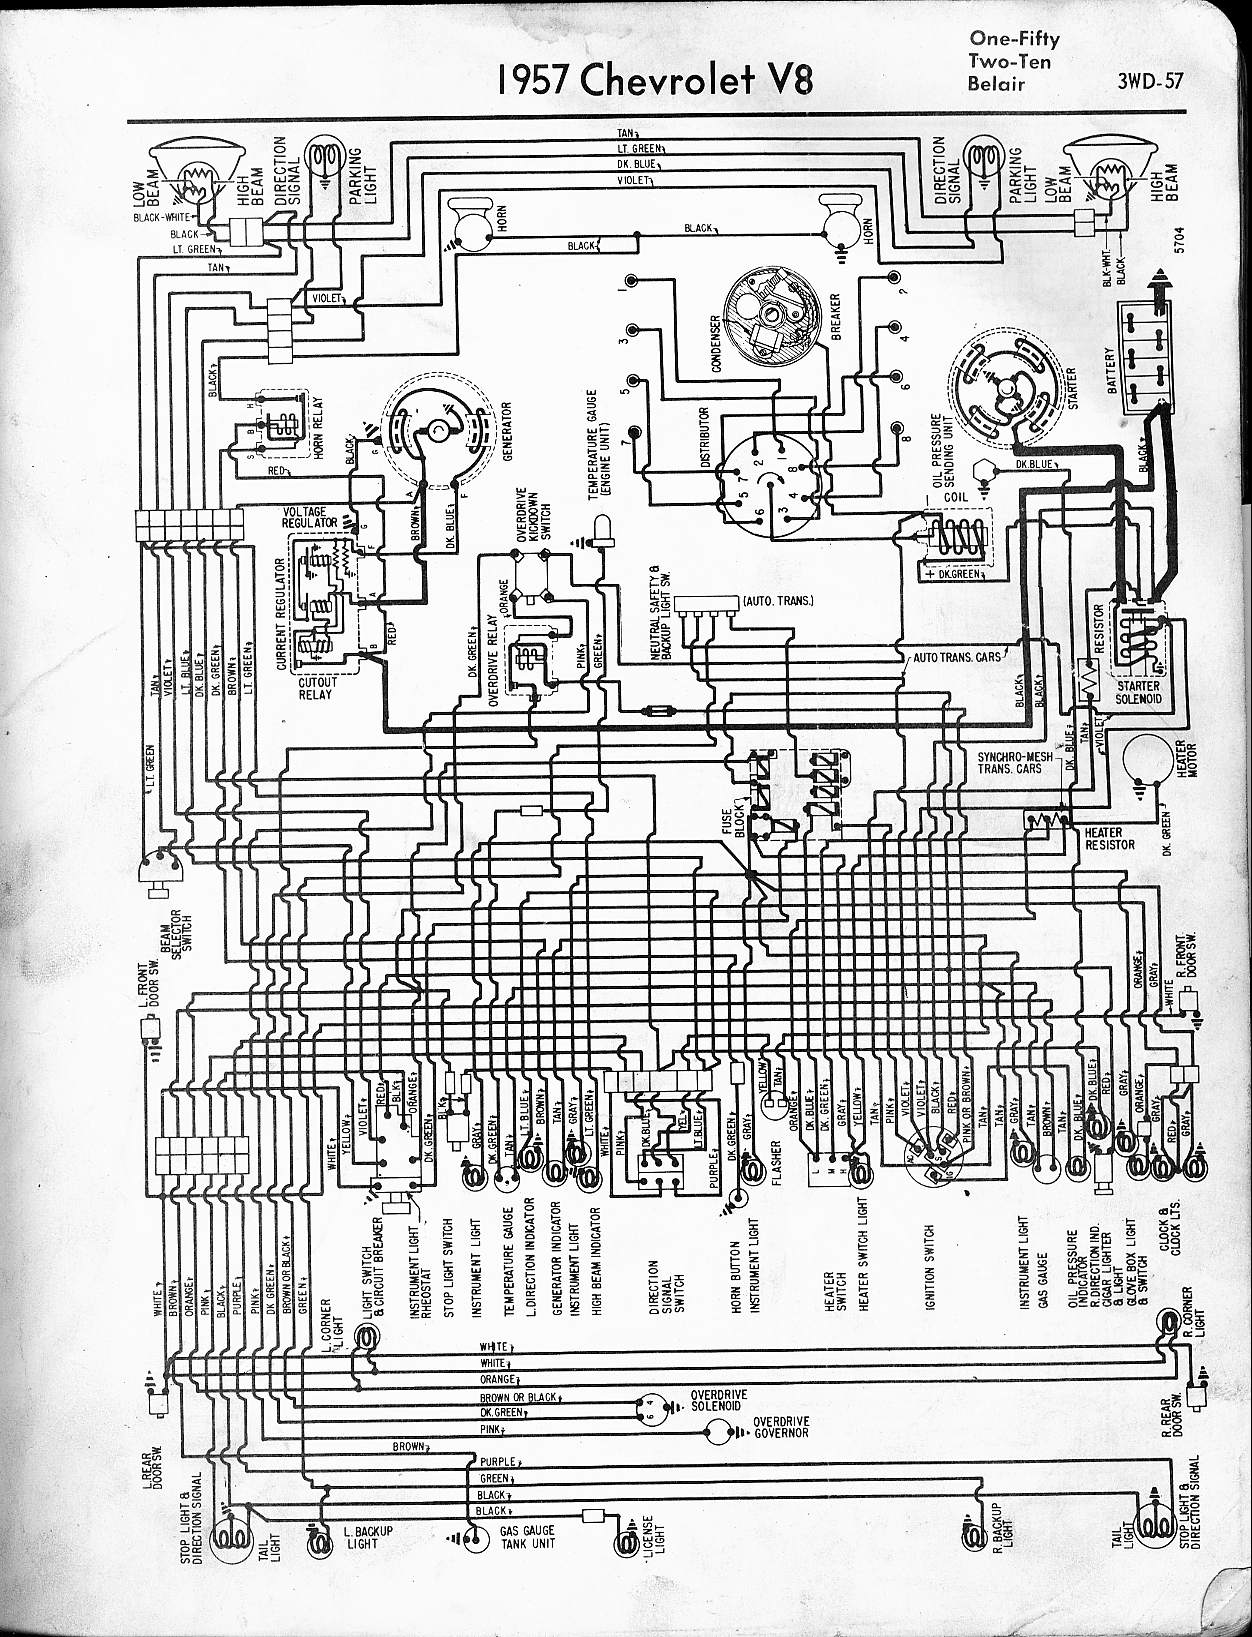 57 Chevy Turn Signal Wiring Diagram Books Of And Brake Switch For 1957 Truck Just Data Rh Ag Skiphire Co Uk Wire